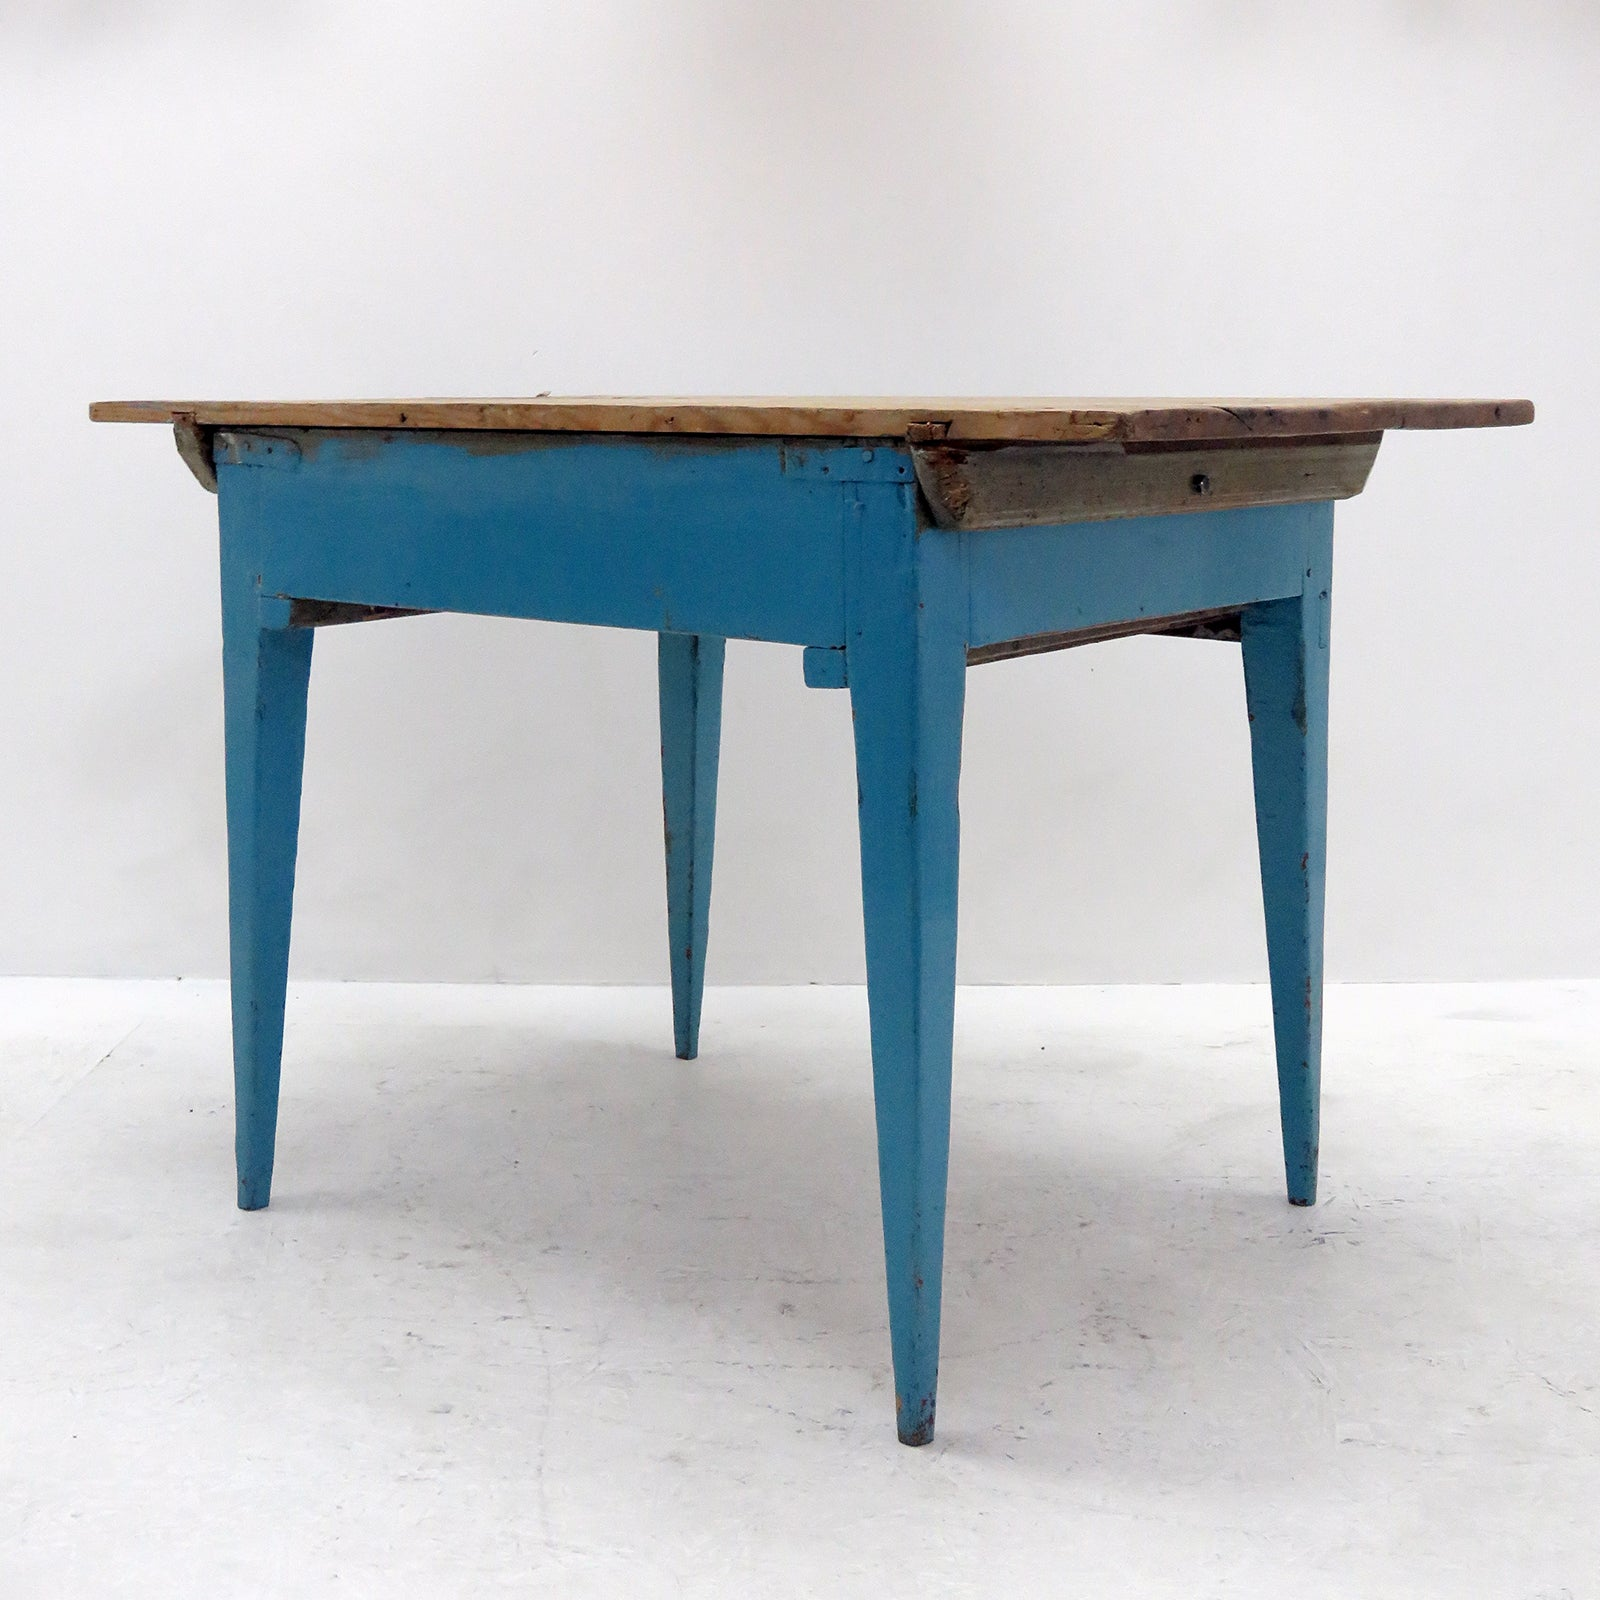 Swedish Rustic Kitchen Table, 1900 For Sale at 1stdibs